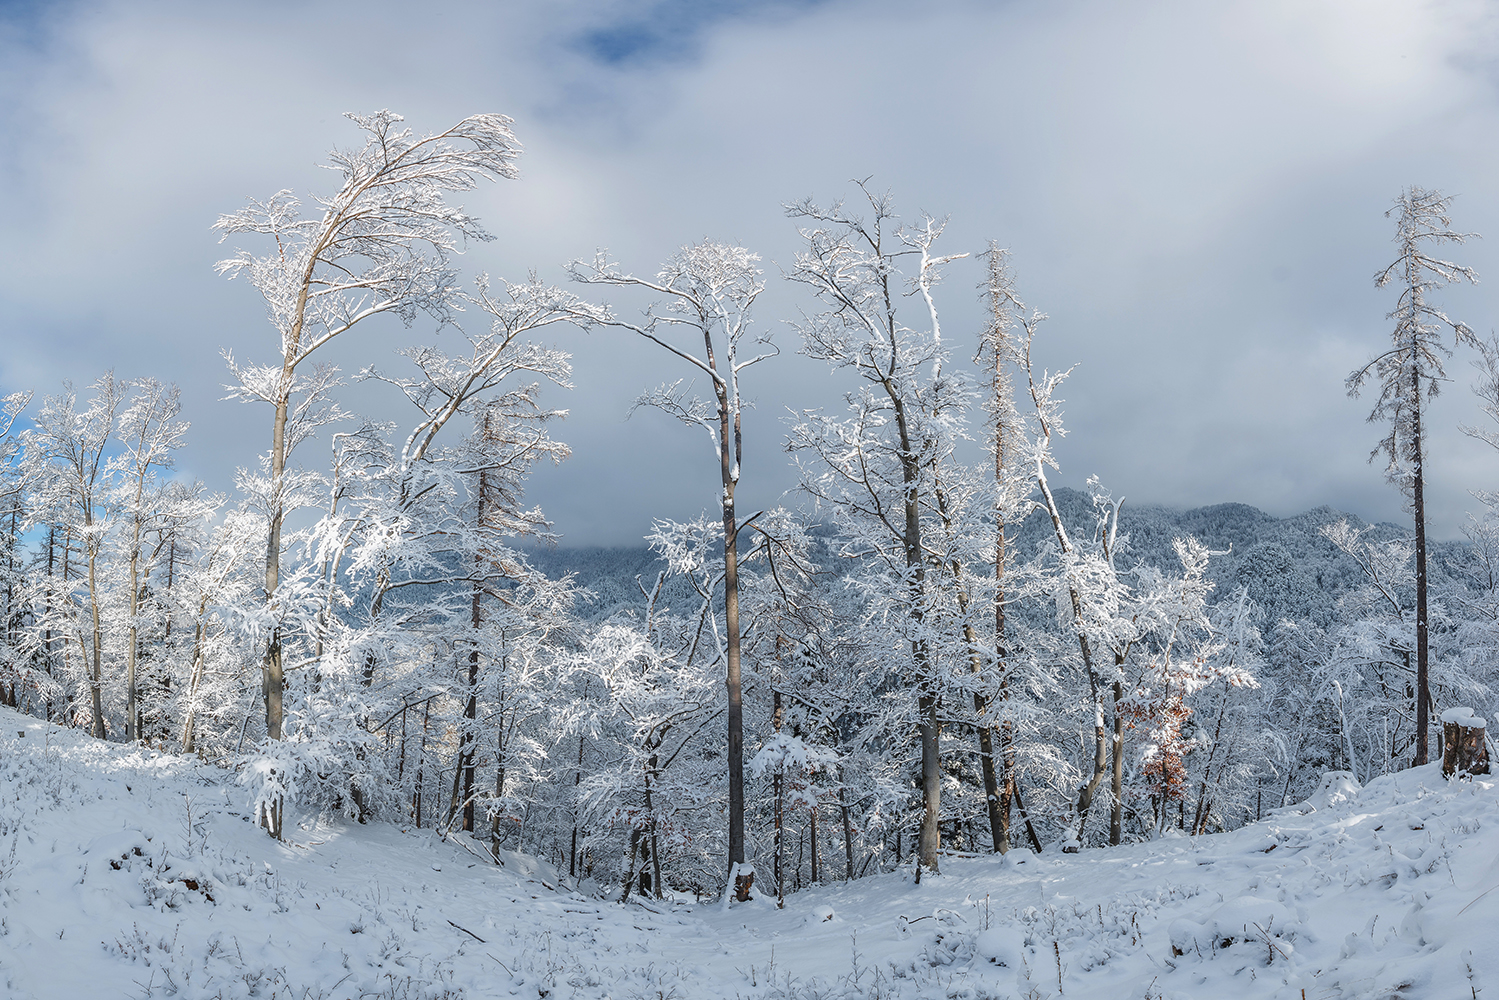 In the winter forest on a snowy day example image 1